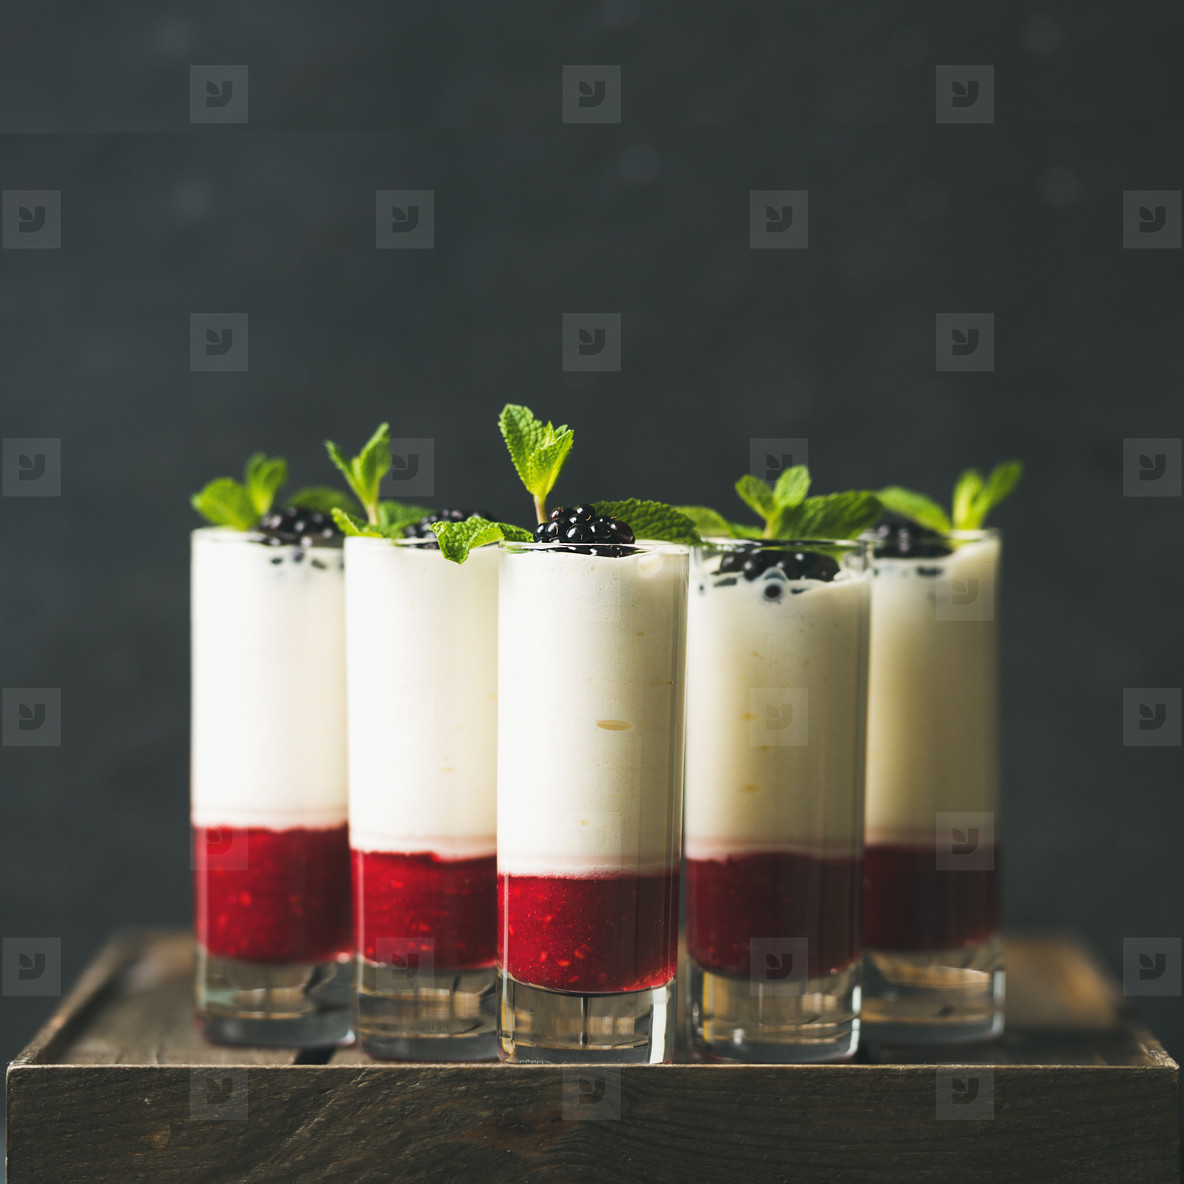 Dessert in glass with blackberries and mint  square crop